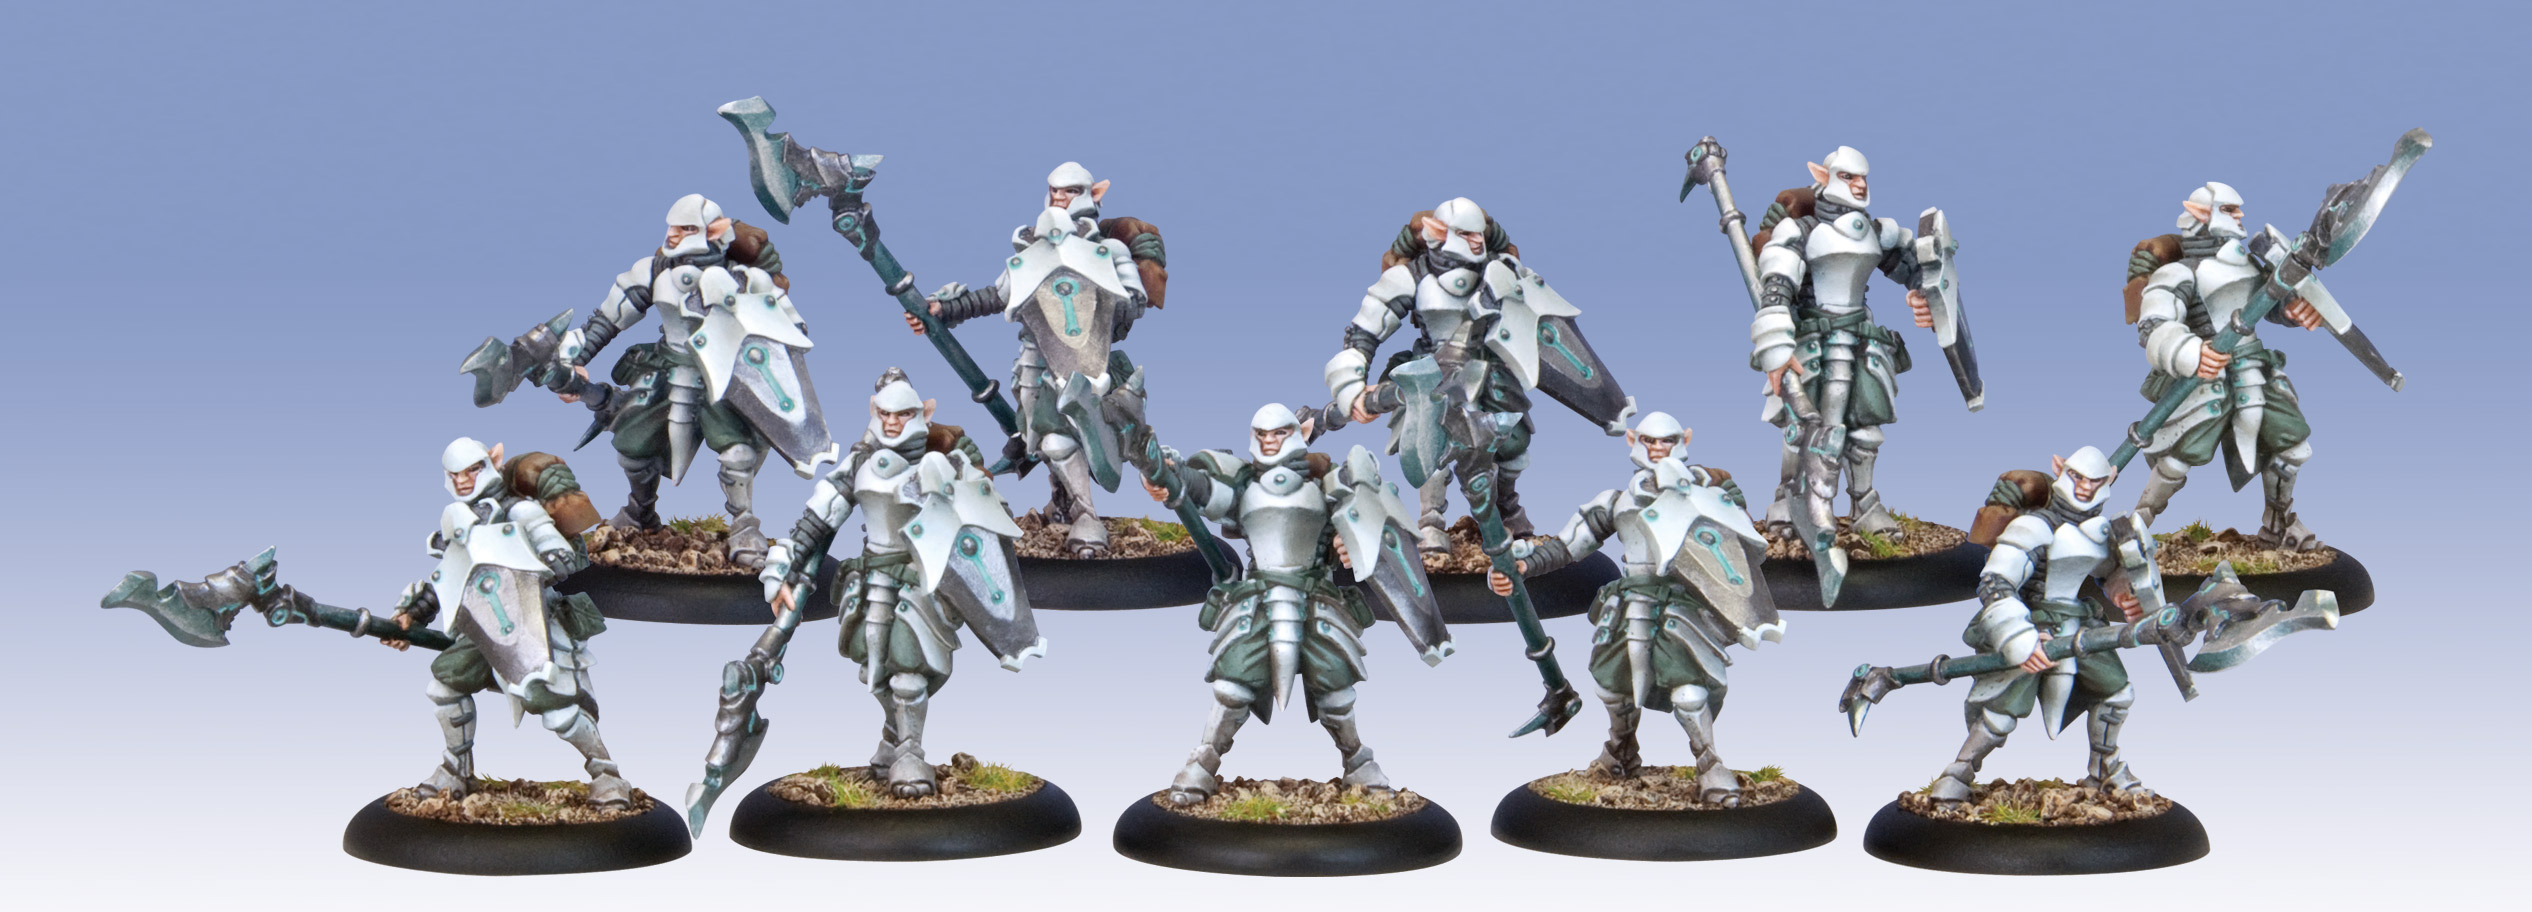 Warmachine: Retribution Of Scyrah (35010): Houseguard Halberdier Unit